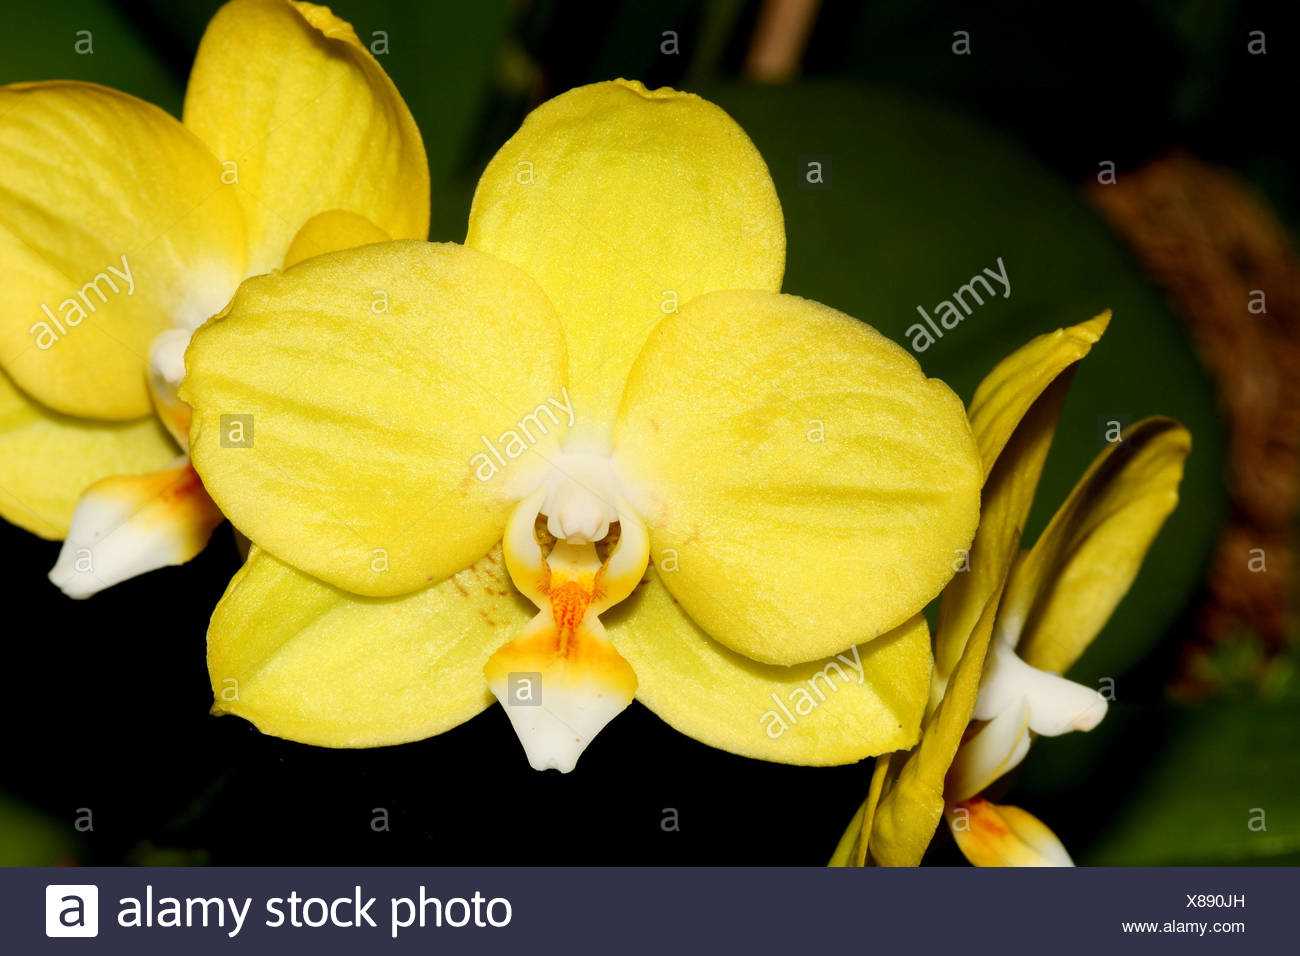 Sogo Orchid Stock Photos & Sogo Orchid Stock Images - Alamy